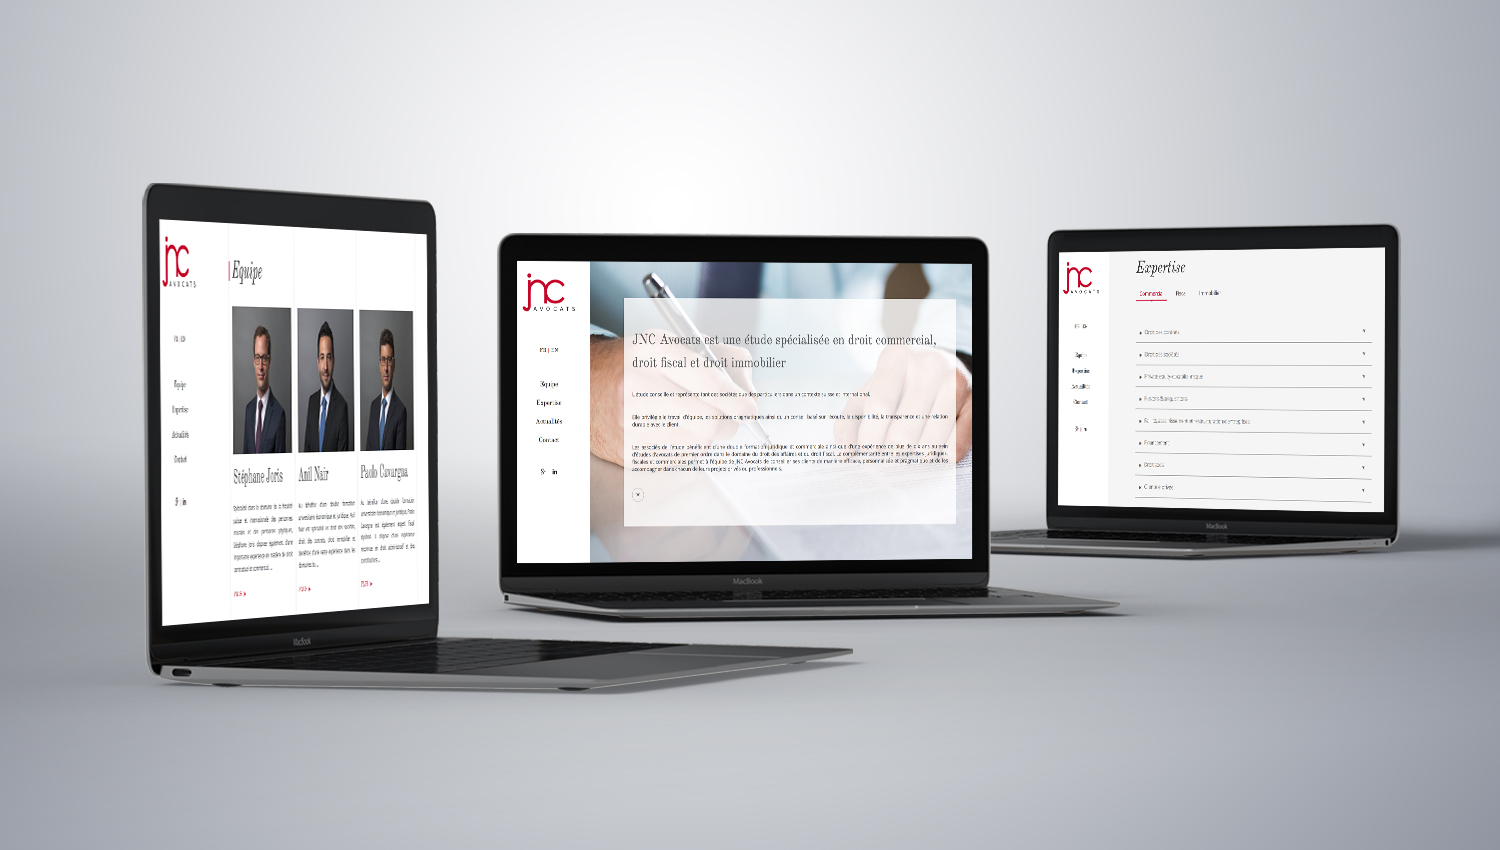 Web design desktop view for JNC Avocats 1 by 8 Ways